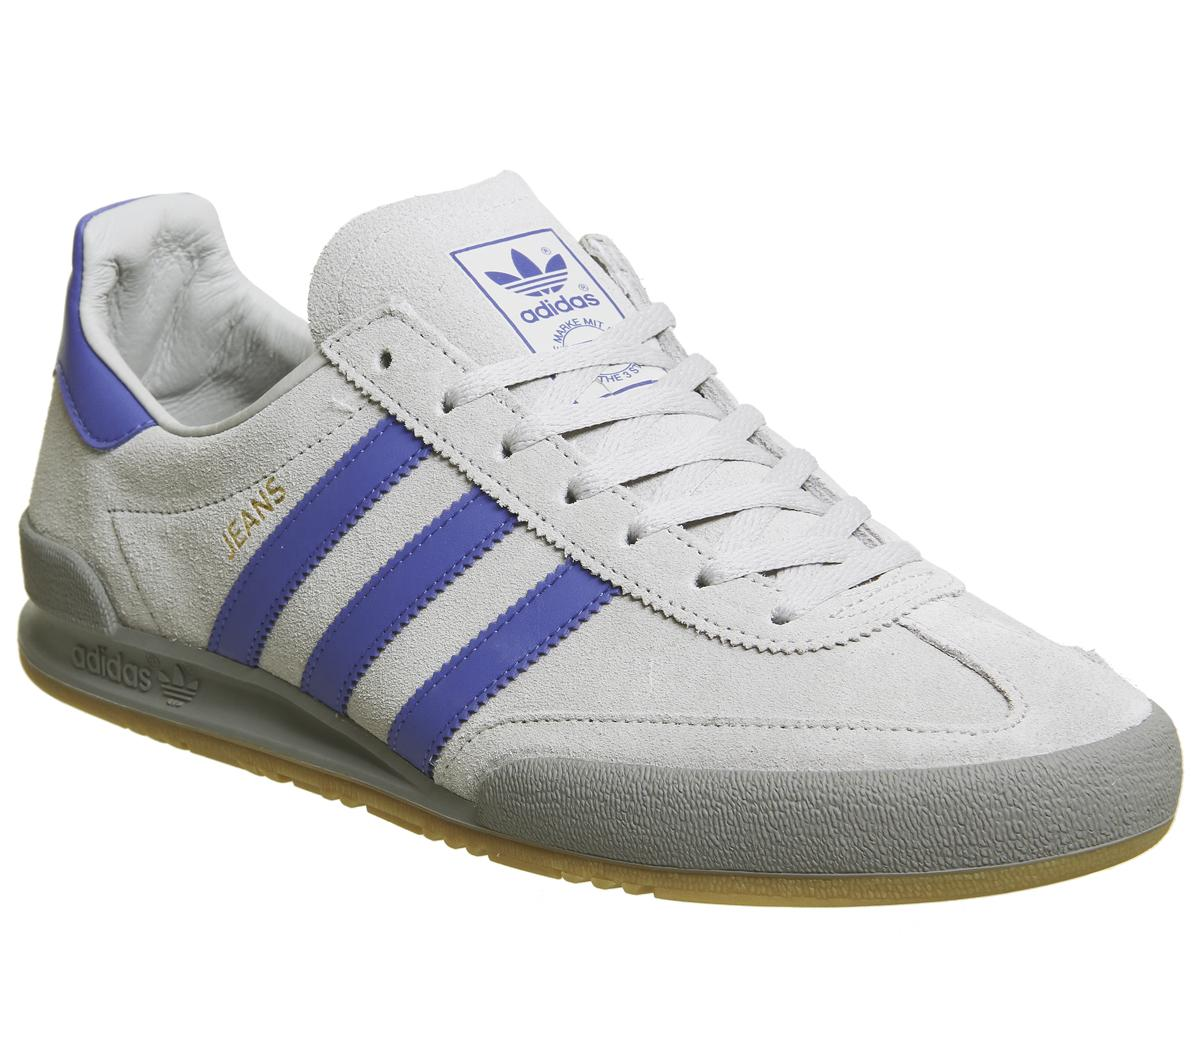 adidas Jeans Trainers Grey Two Hi Res